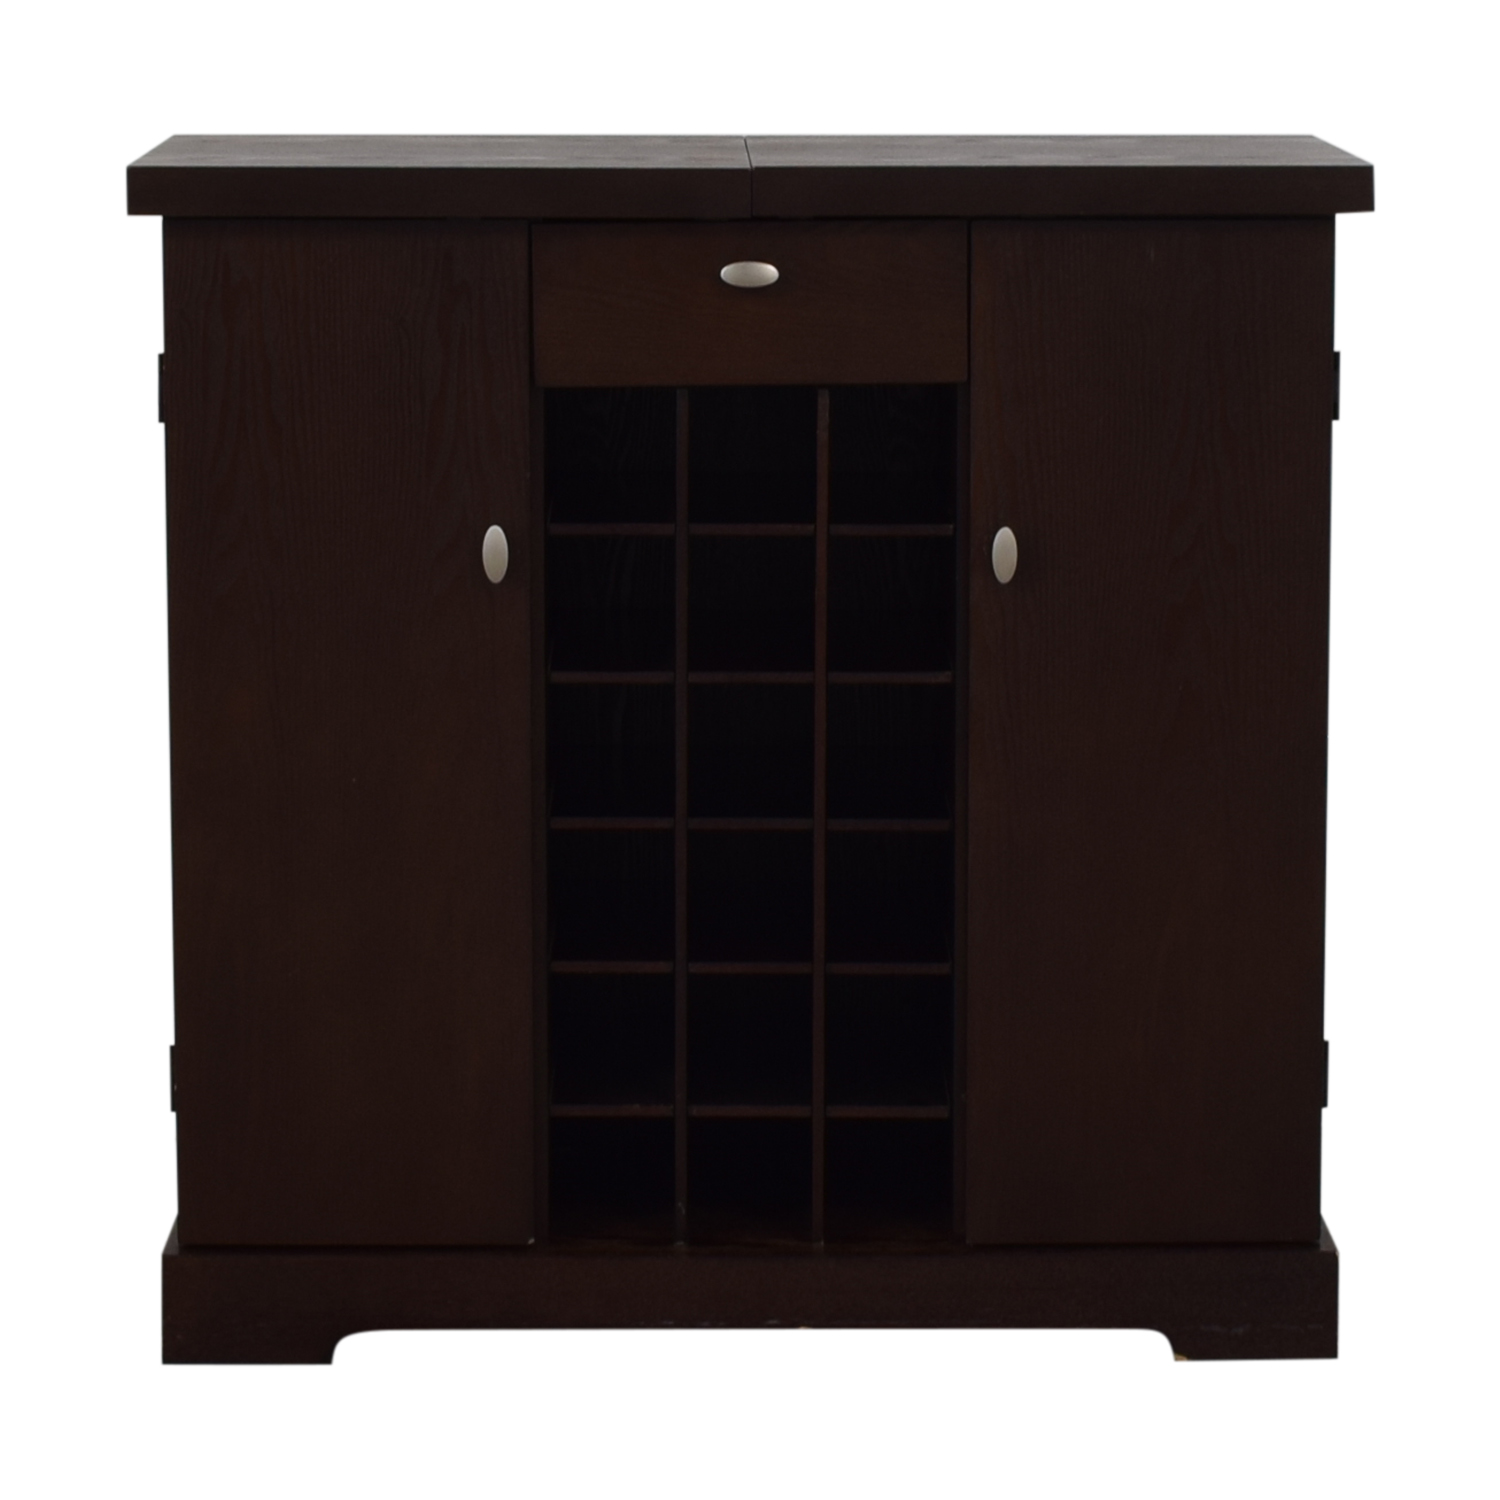 Crate & Barrel Crate & Barrel Bar Cabinet brown